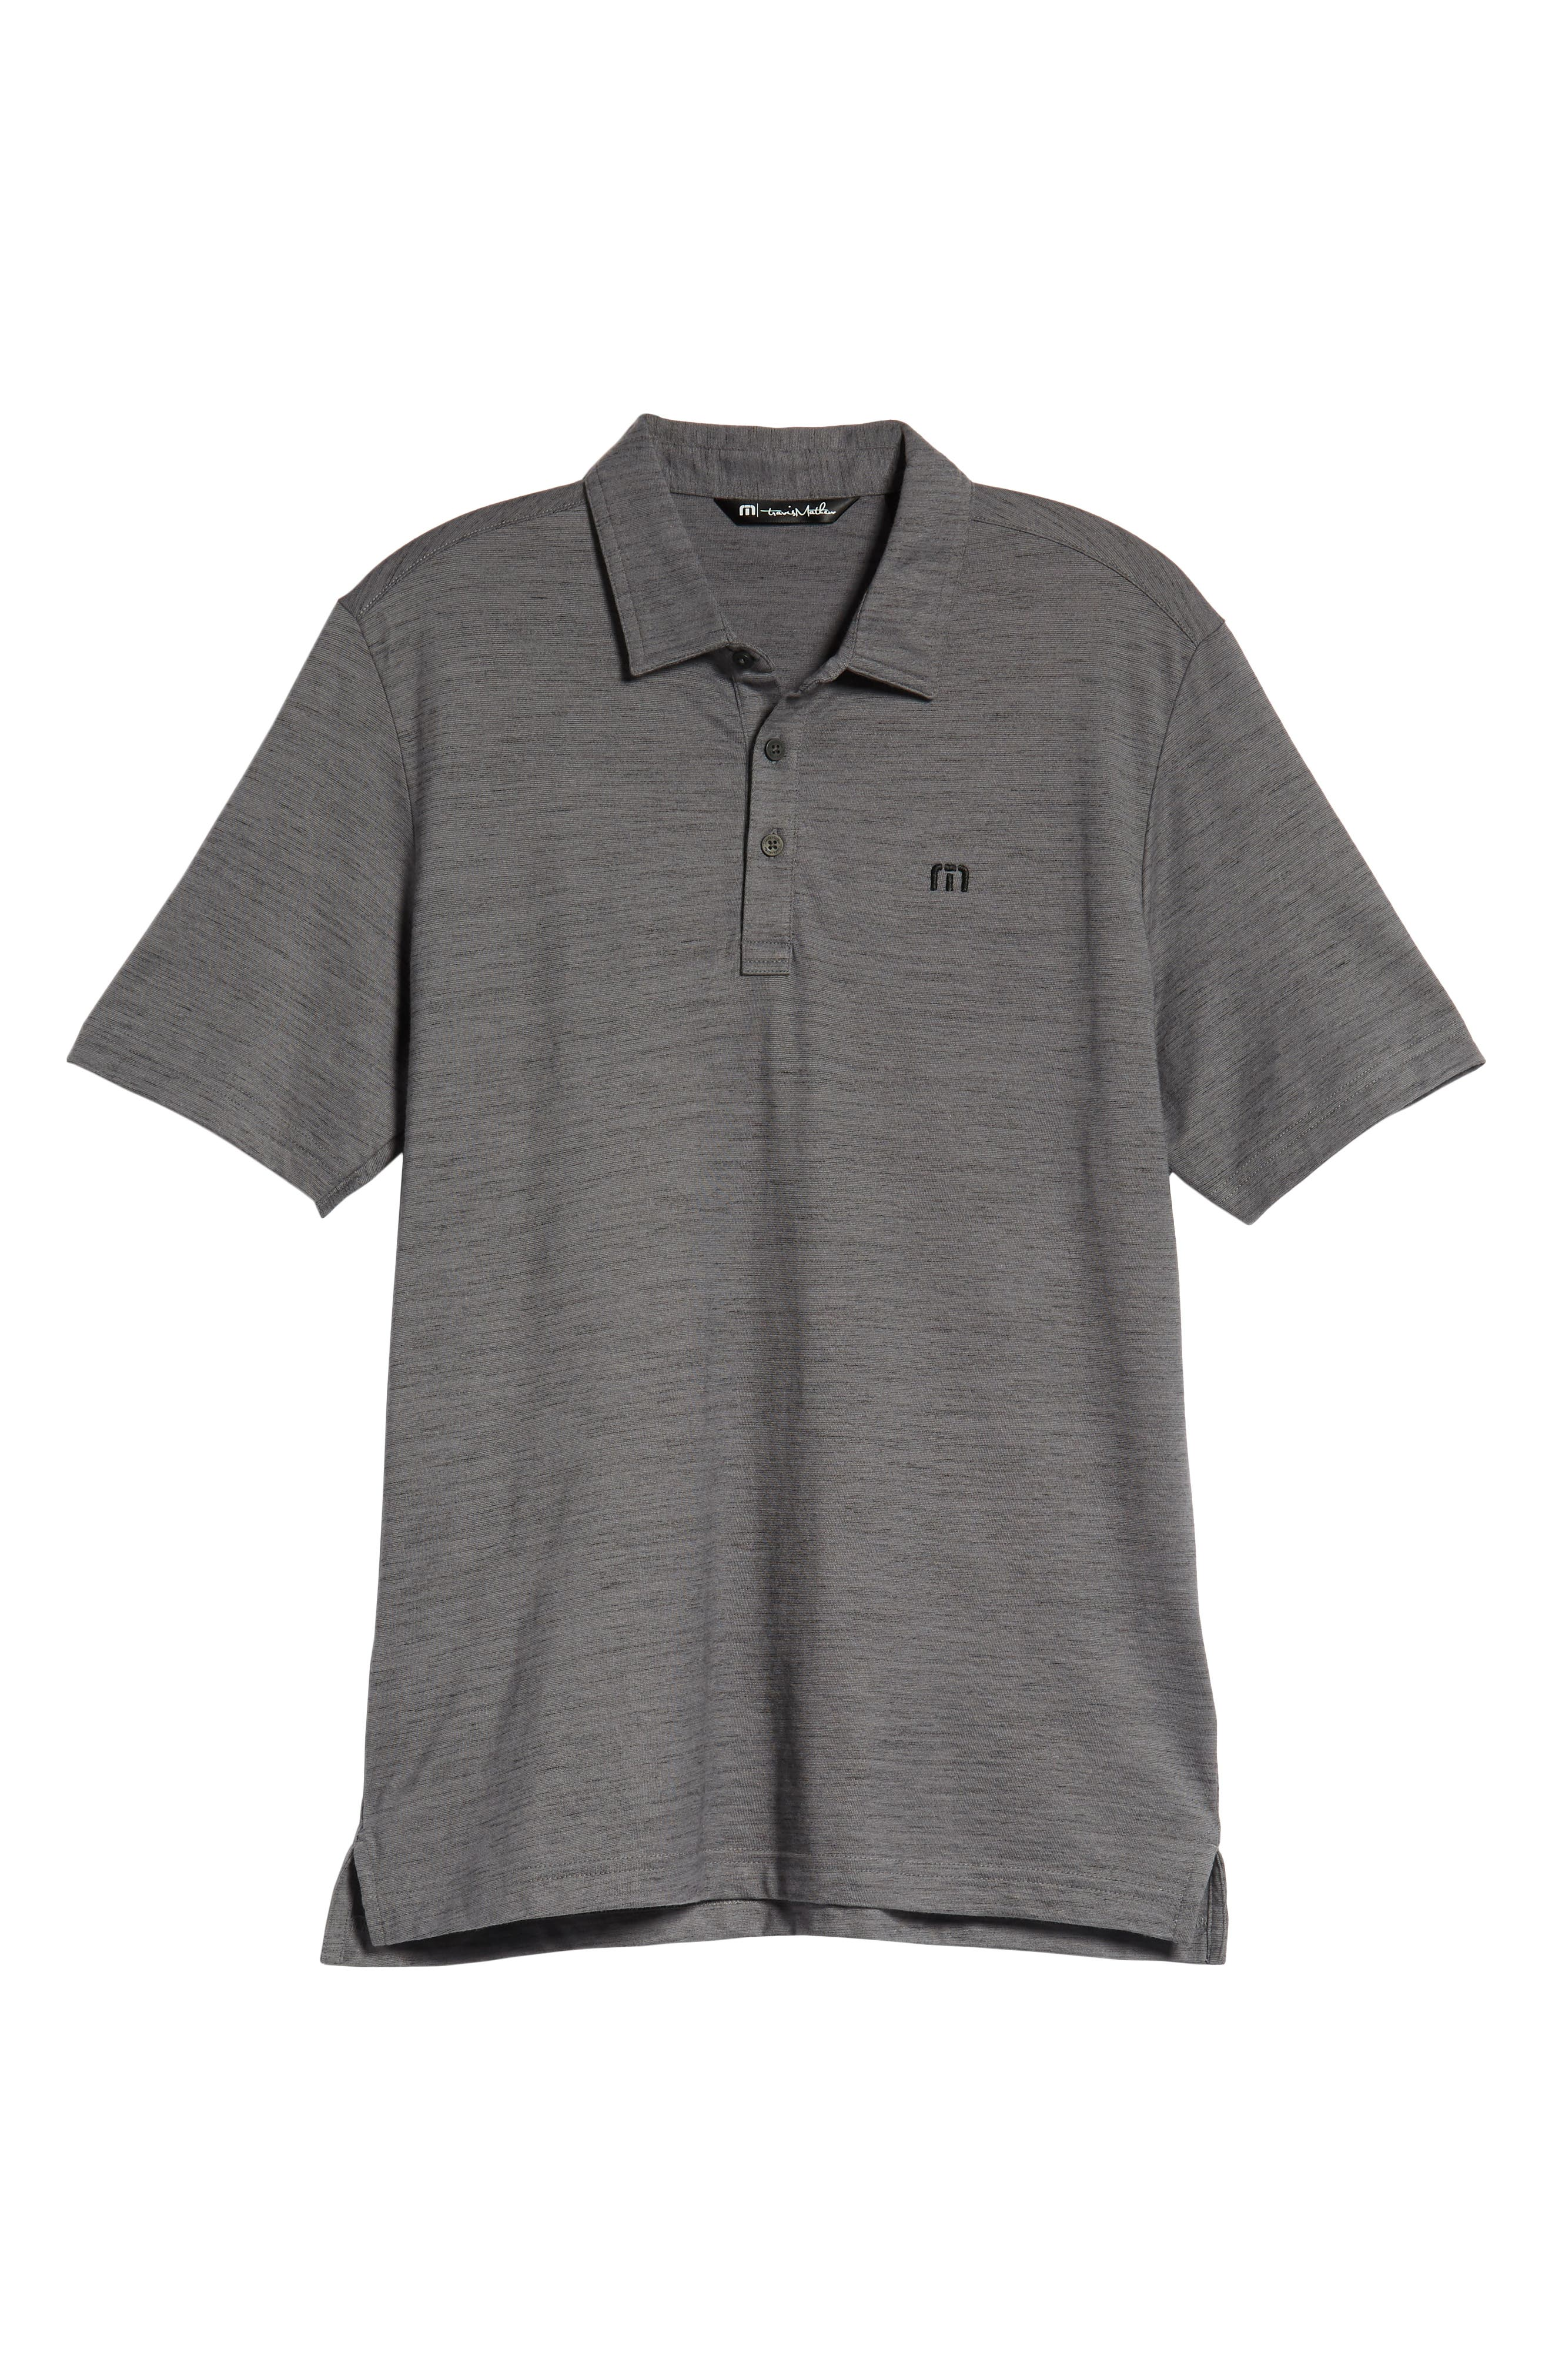 Flying Tortilla Regular Fit Performance Polo,                             Alternate thumbnail 6, color,                             020